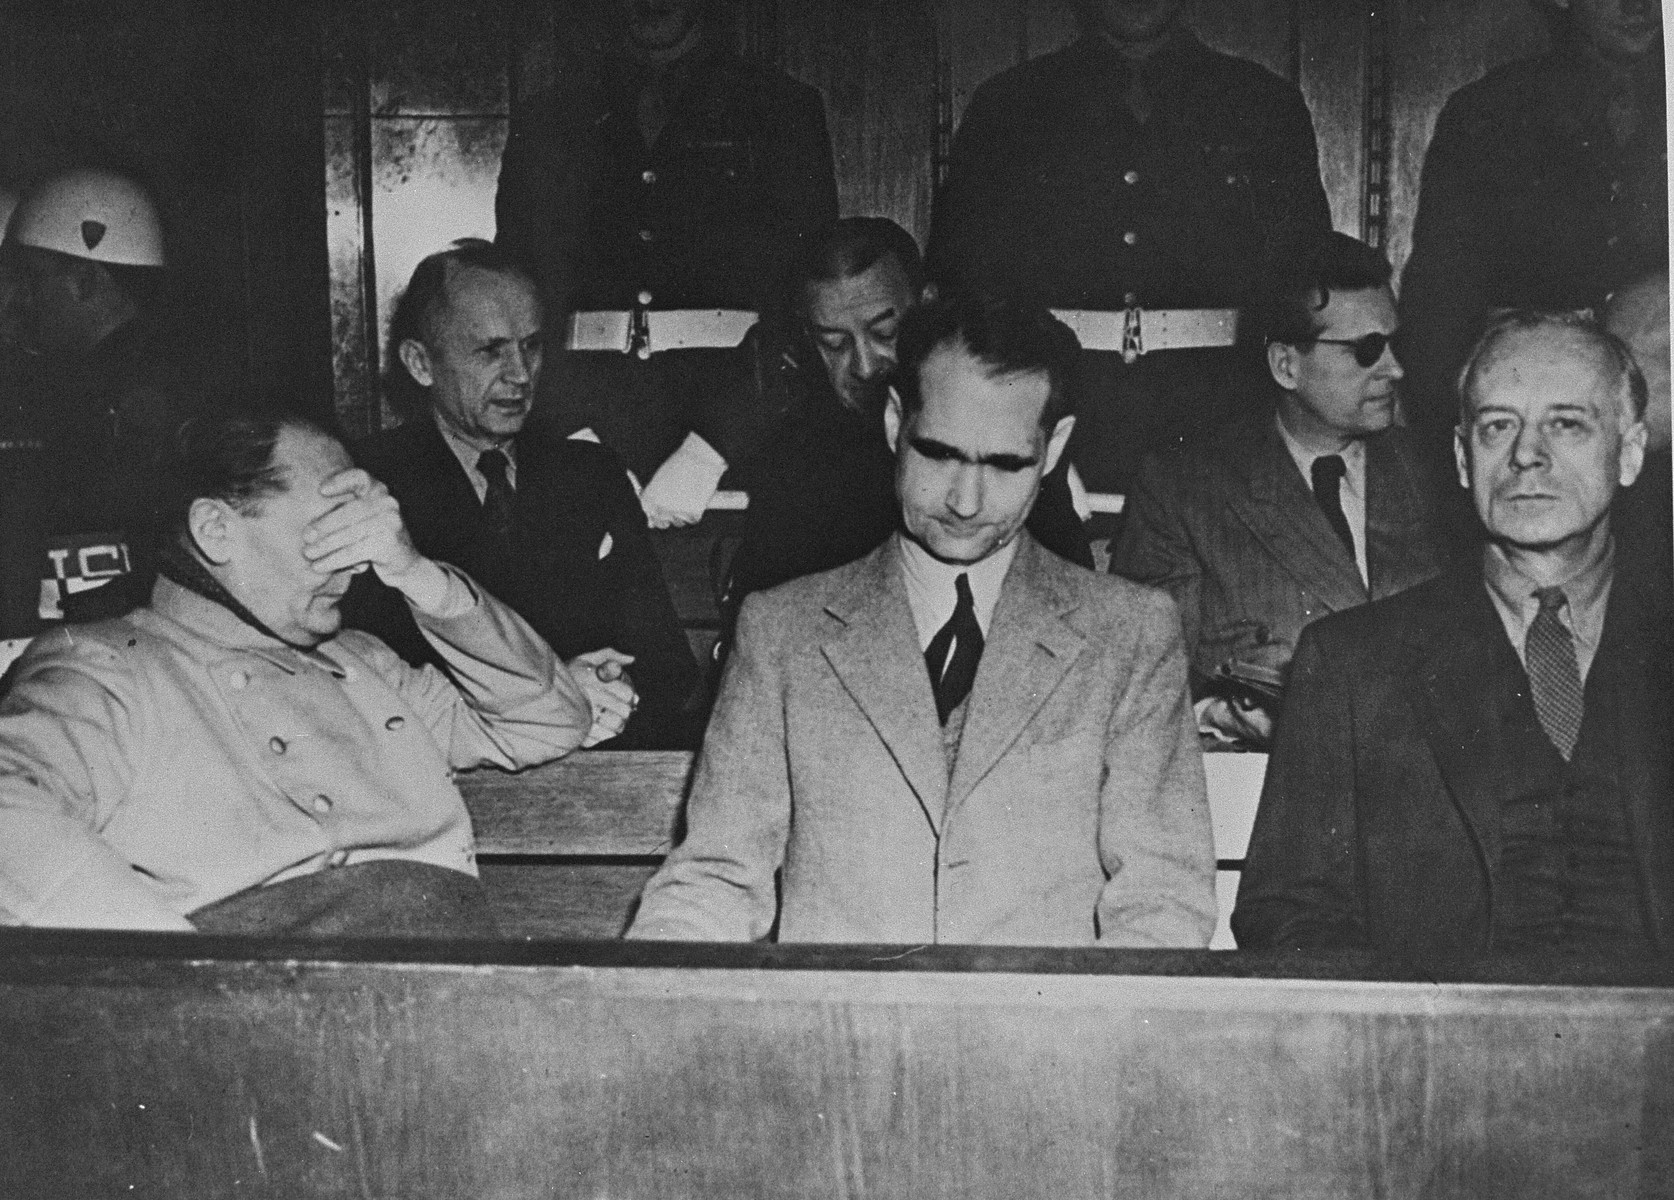 Defendants at the International Military Tribunal trial of war criminals at Nuremberg.  In the front row, left to right, are Hermann Goering, Rudolf Hess, and Joachim von Ribbentrop.  In the back row, left to right, are Karl Doenitz, Erich Raeder, and Baldur von Schirach.